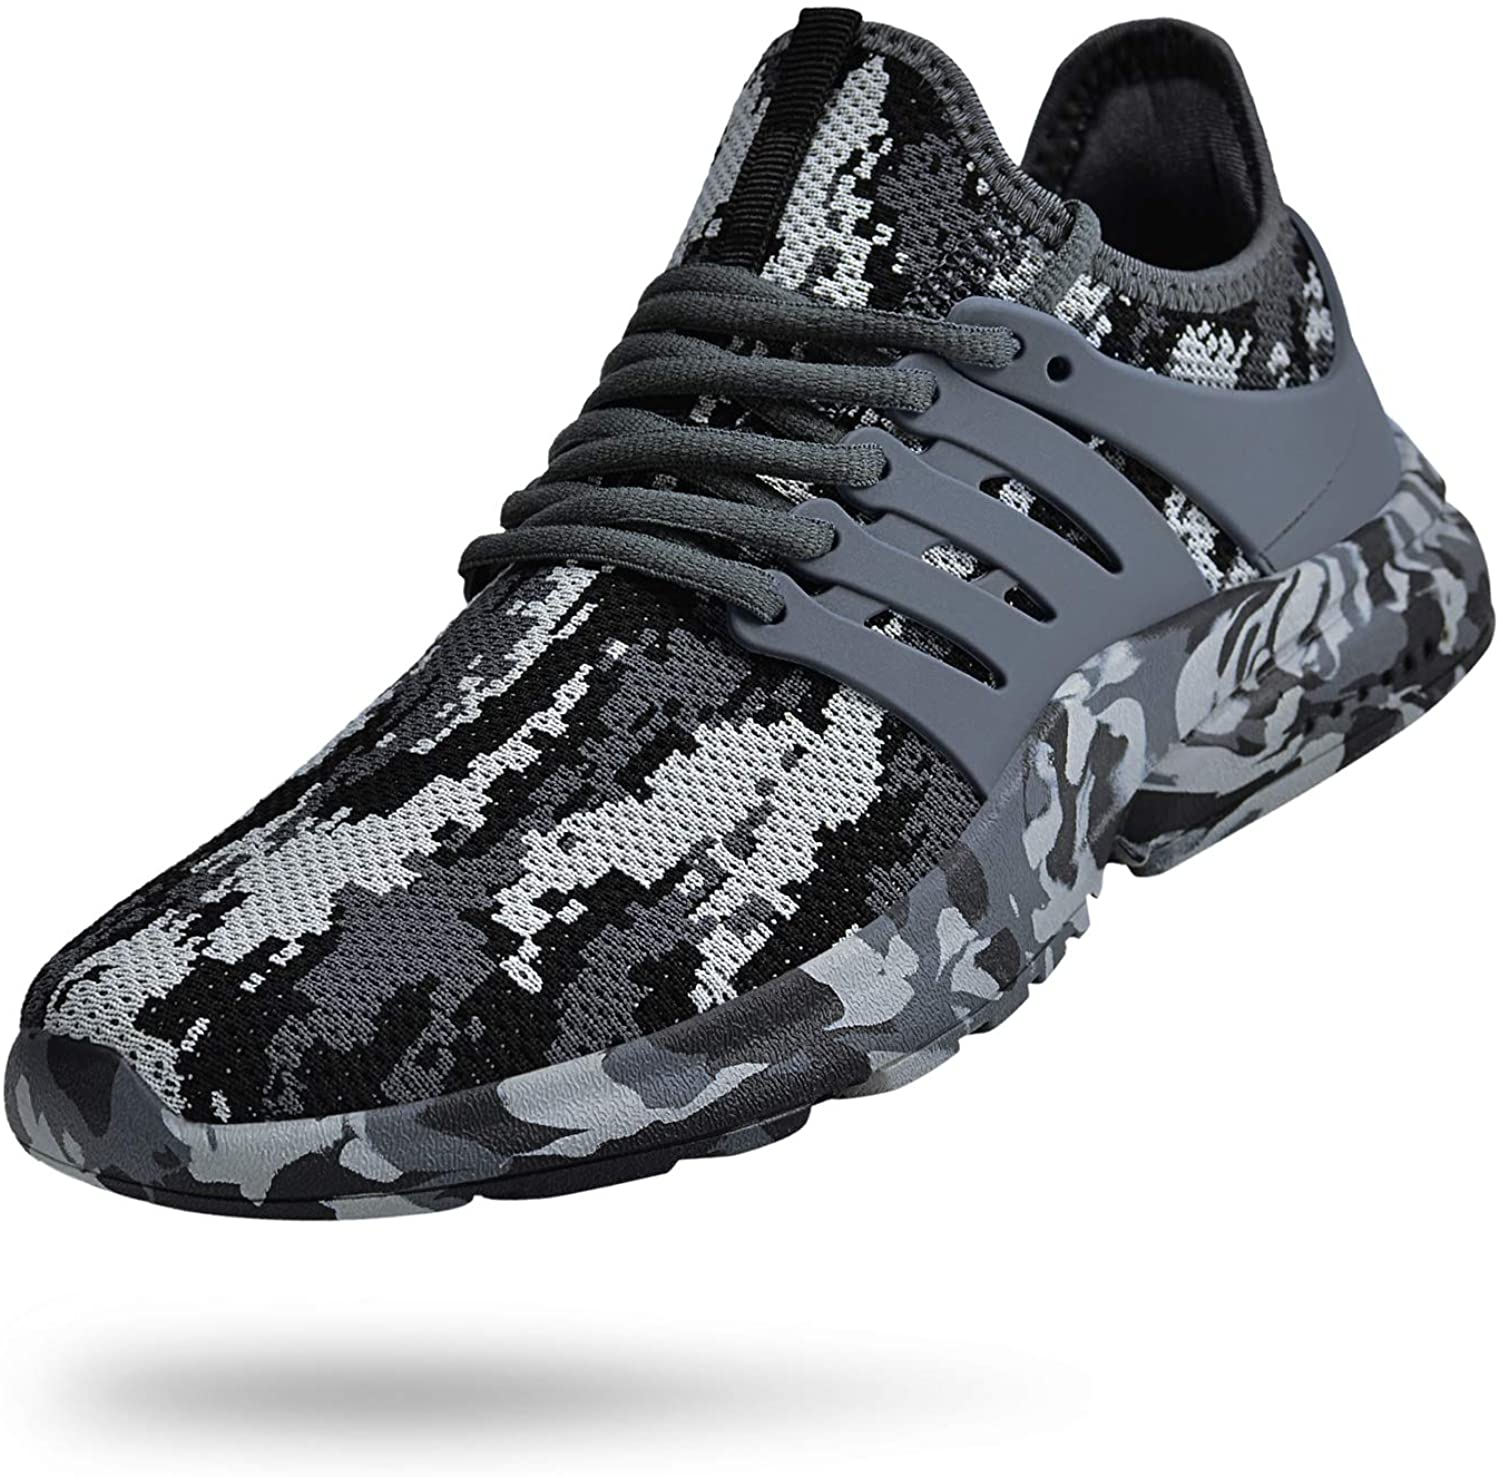   Biacolum Mens Running Shoes Non Slip Gym Tennis Shoes Slip Resistant Air Knitted Sneakers Walking Workout Sport Shoes   Walking